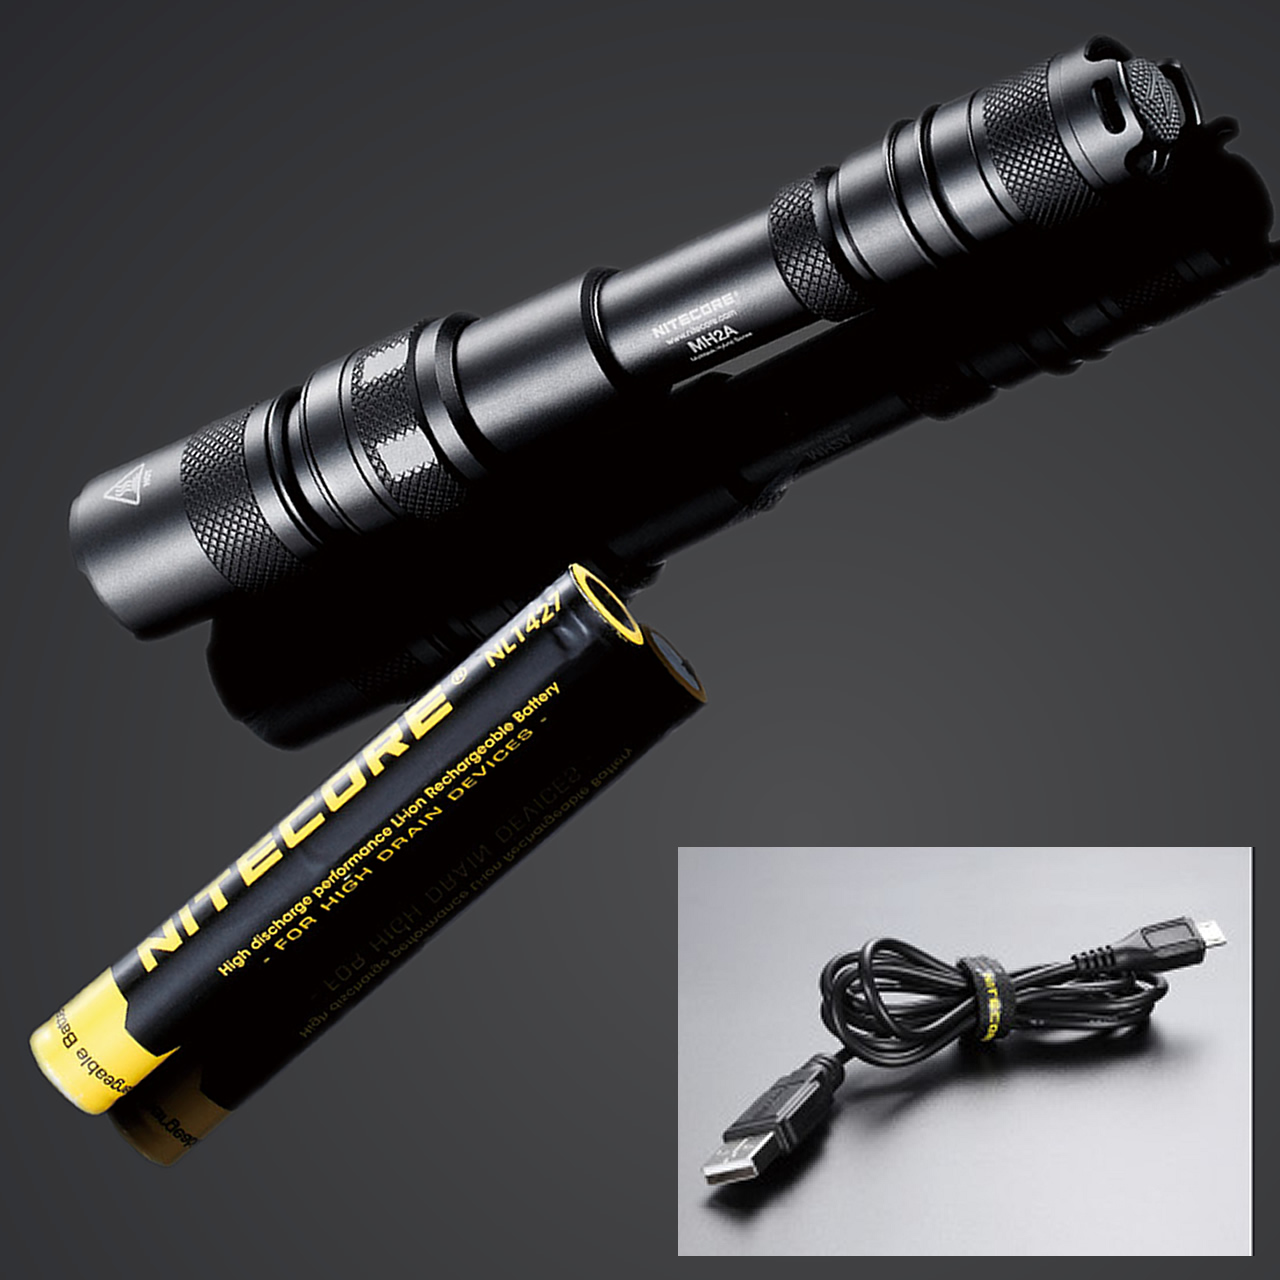 2017 NITECORE MH2A 600 Lumens XM-L U2 LED Rechargeable Flashlight Outdoor Search Rescue Tactical Torch + Battery + Free Shipping nitecore mh20 with 3200mah battery 1000 lumens cree xm l2 u2 led rechargeable mini flashlight waterproof led torch free shipping